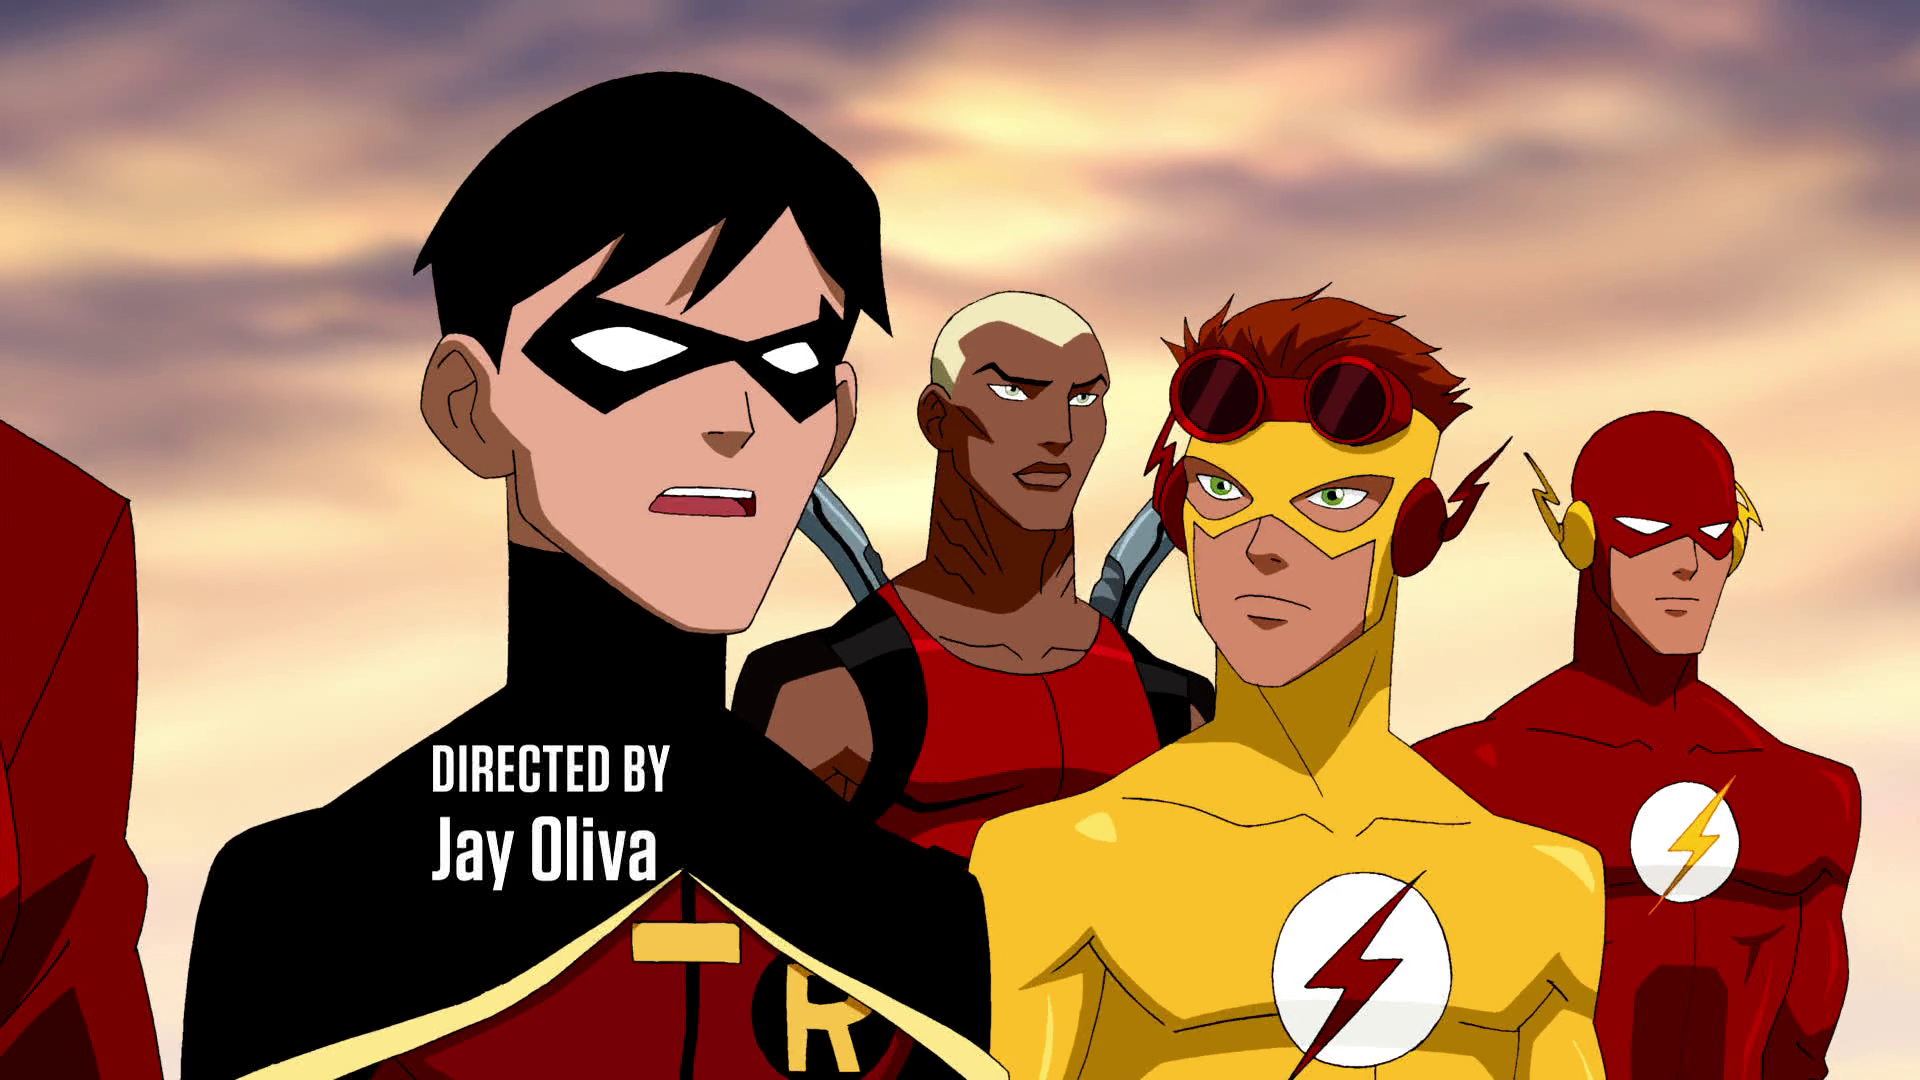 Young-Justice-S01-E01-Independence-Day-1080p-NF-WEB-DL-DDP2-0-x264-Telly-299-png